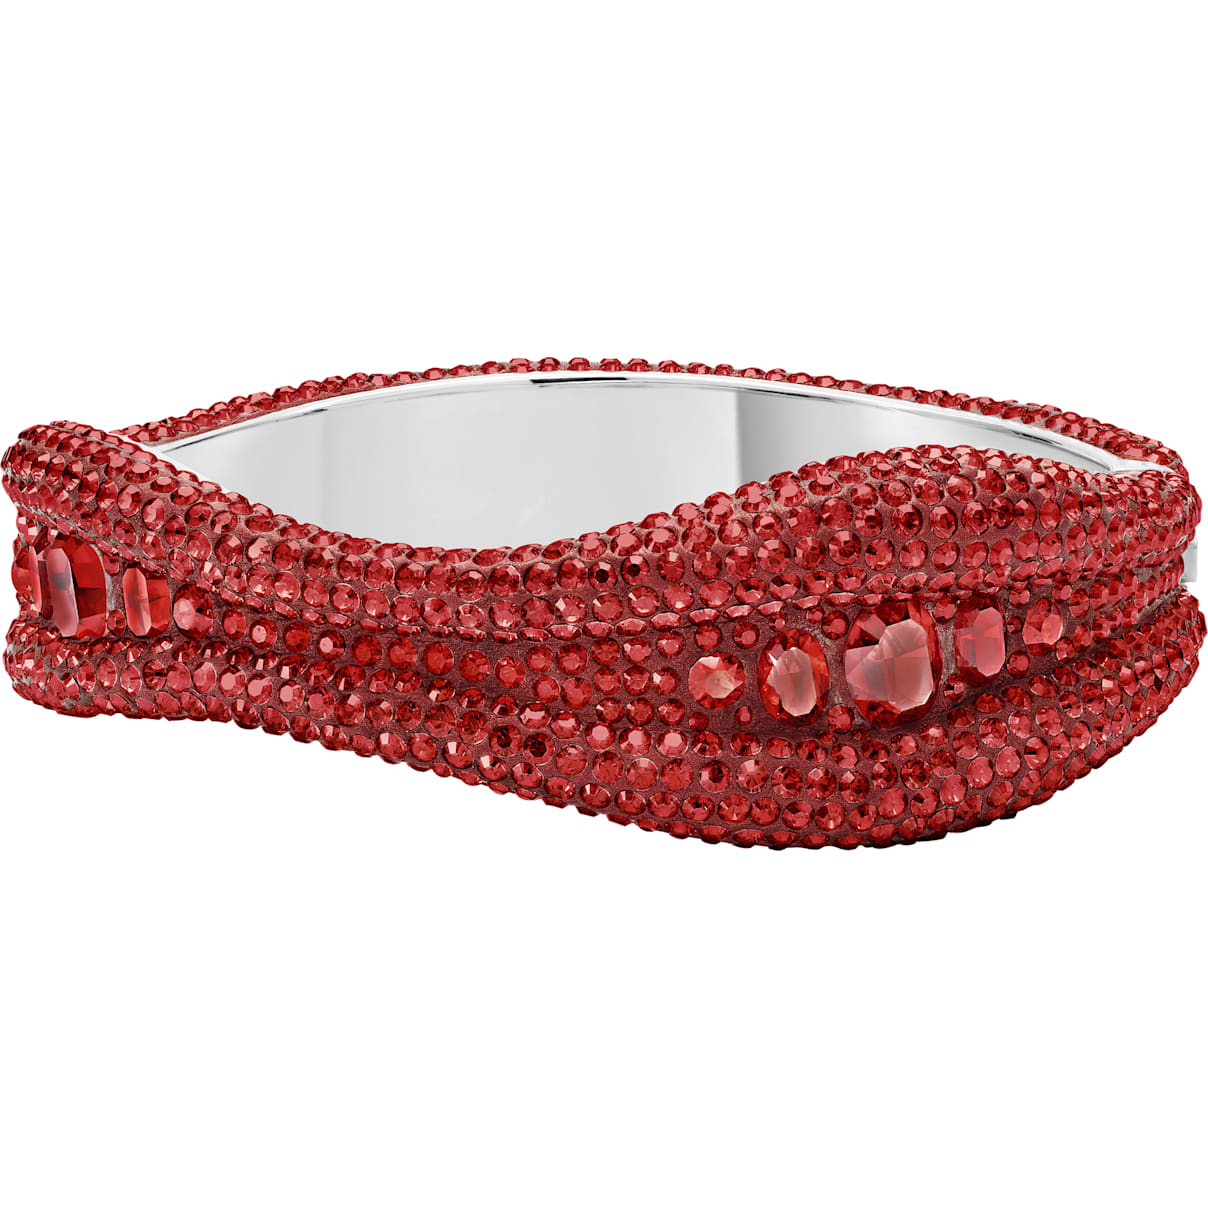 Swarovski Tigris Bangle, Red, Palladium plated